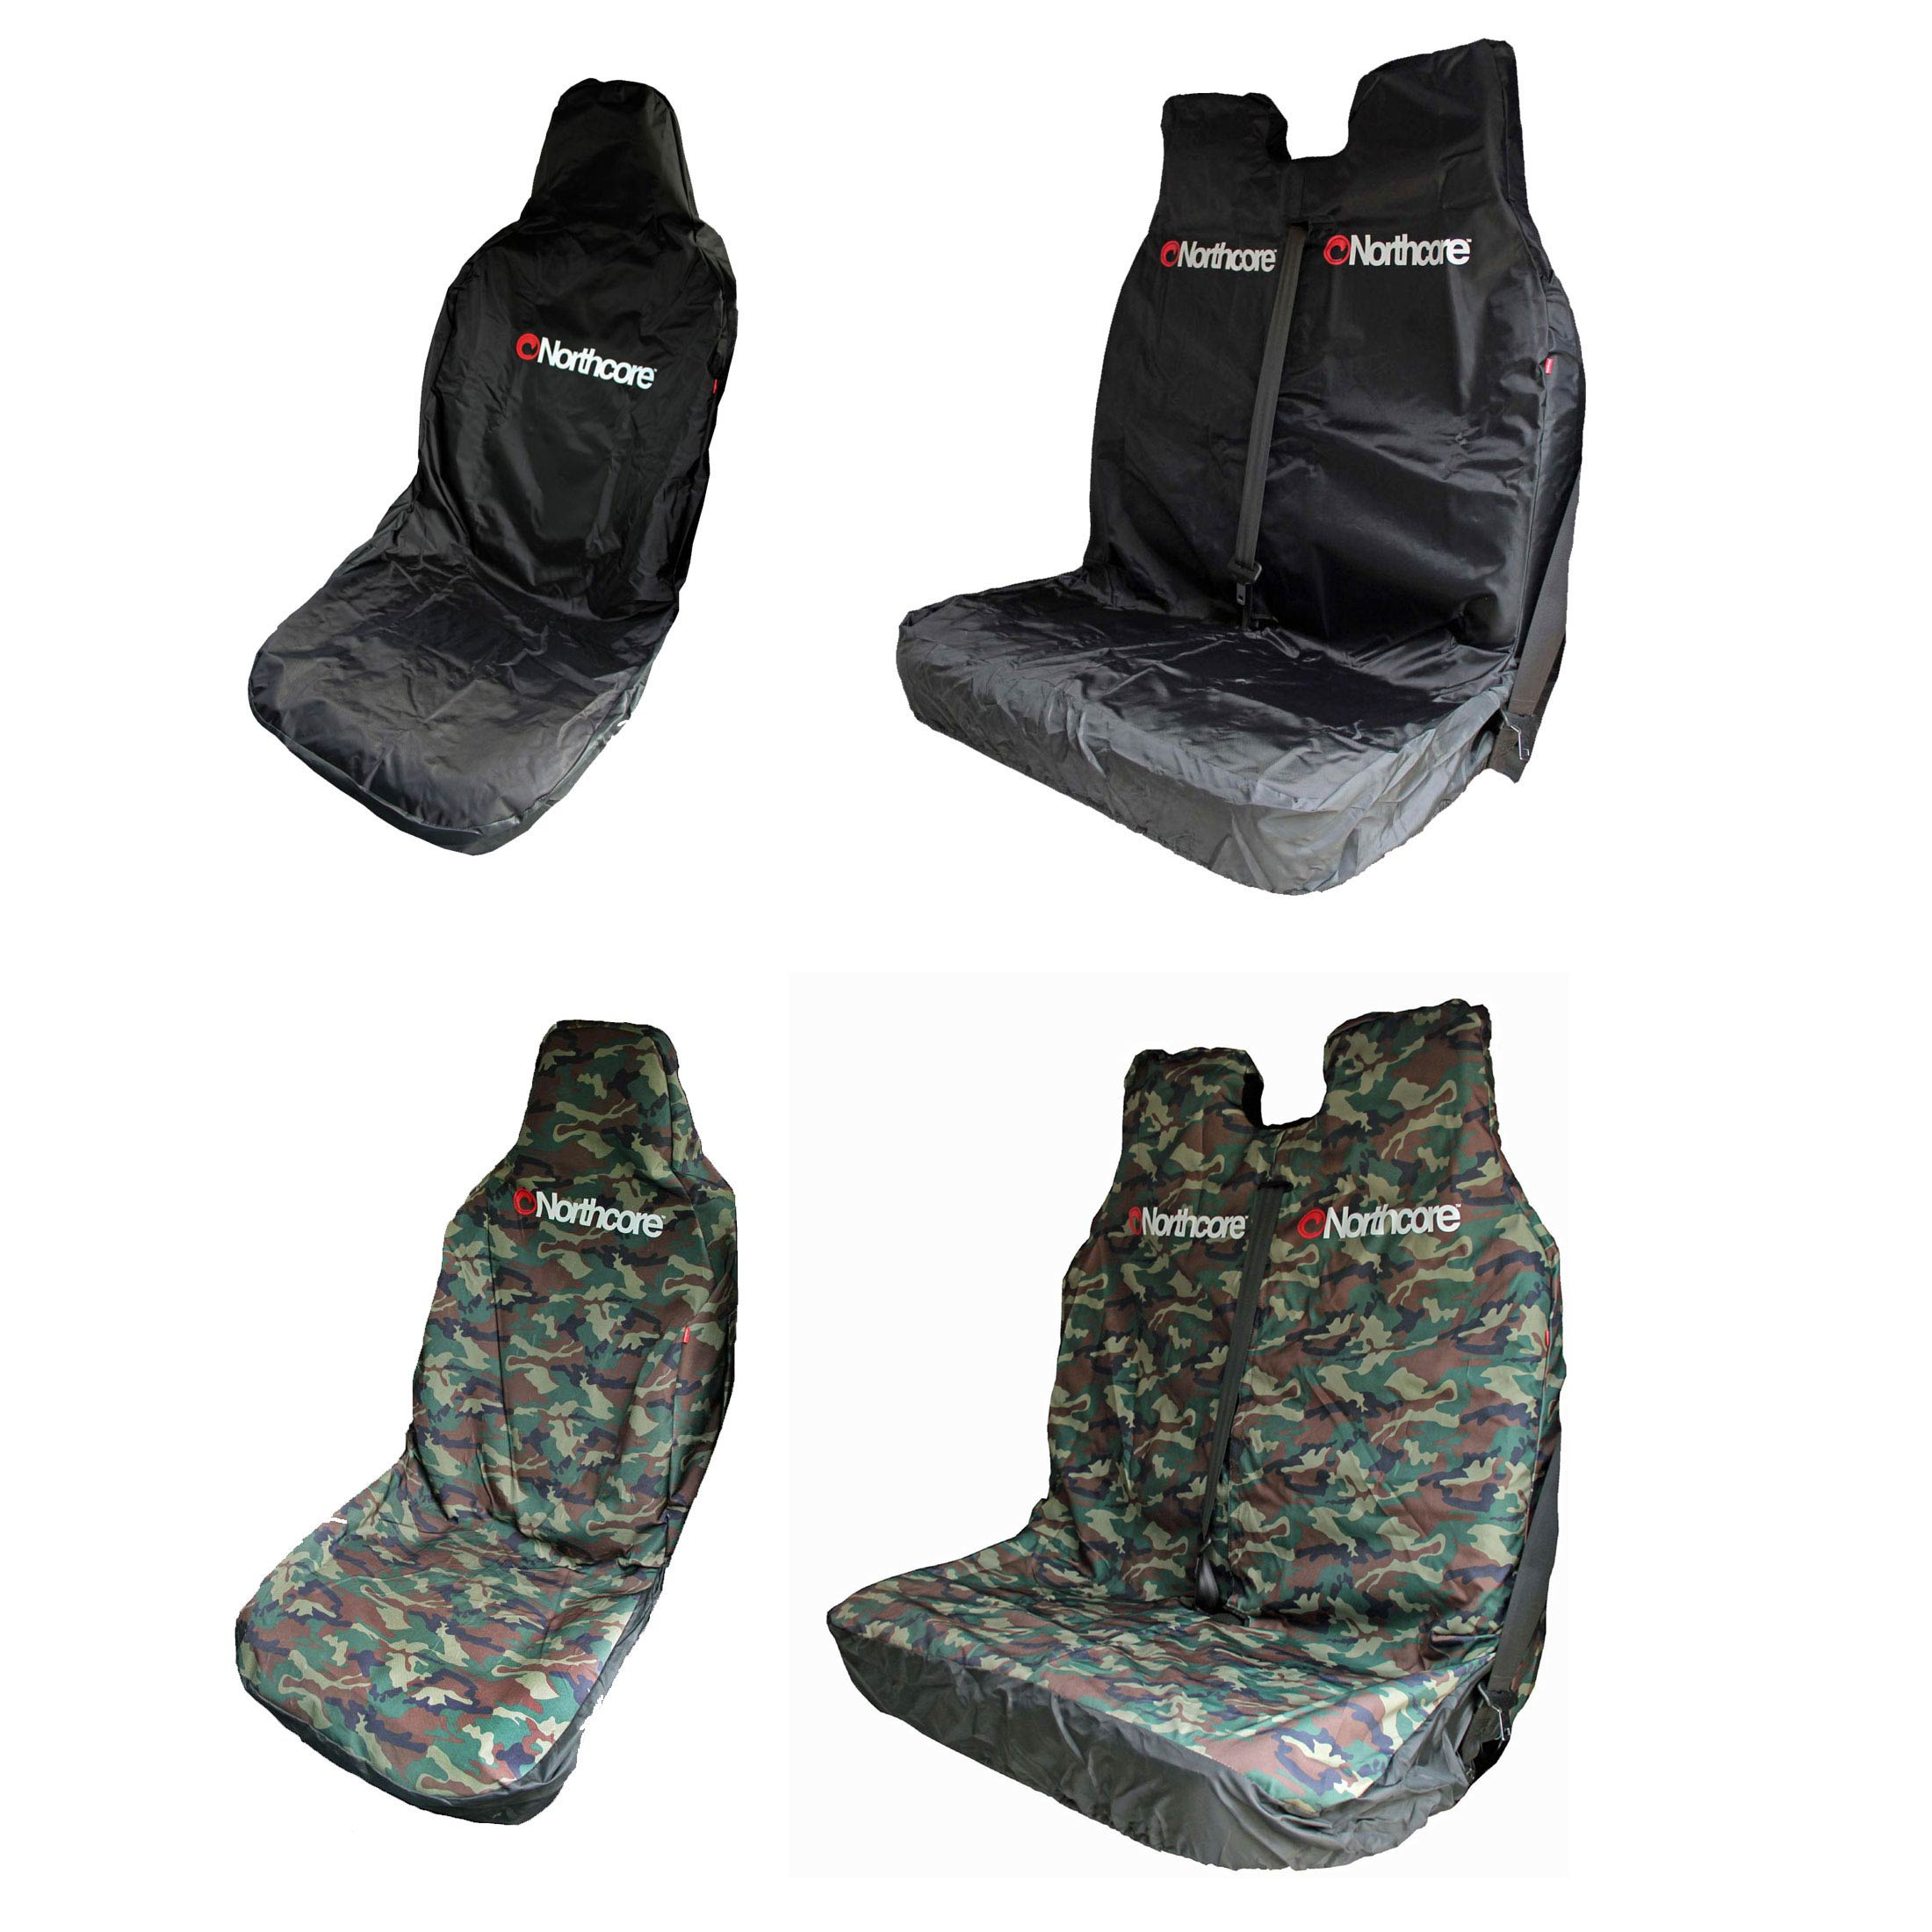 Northcore Van Seat Cover Sets